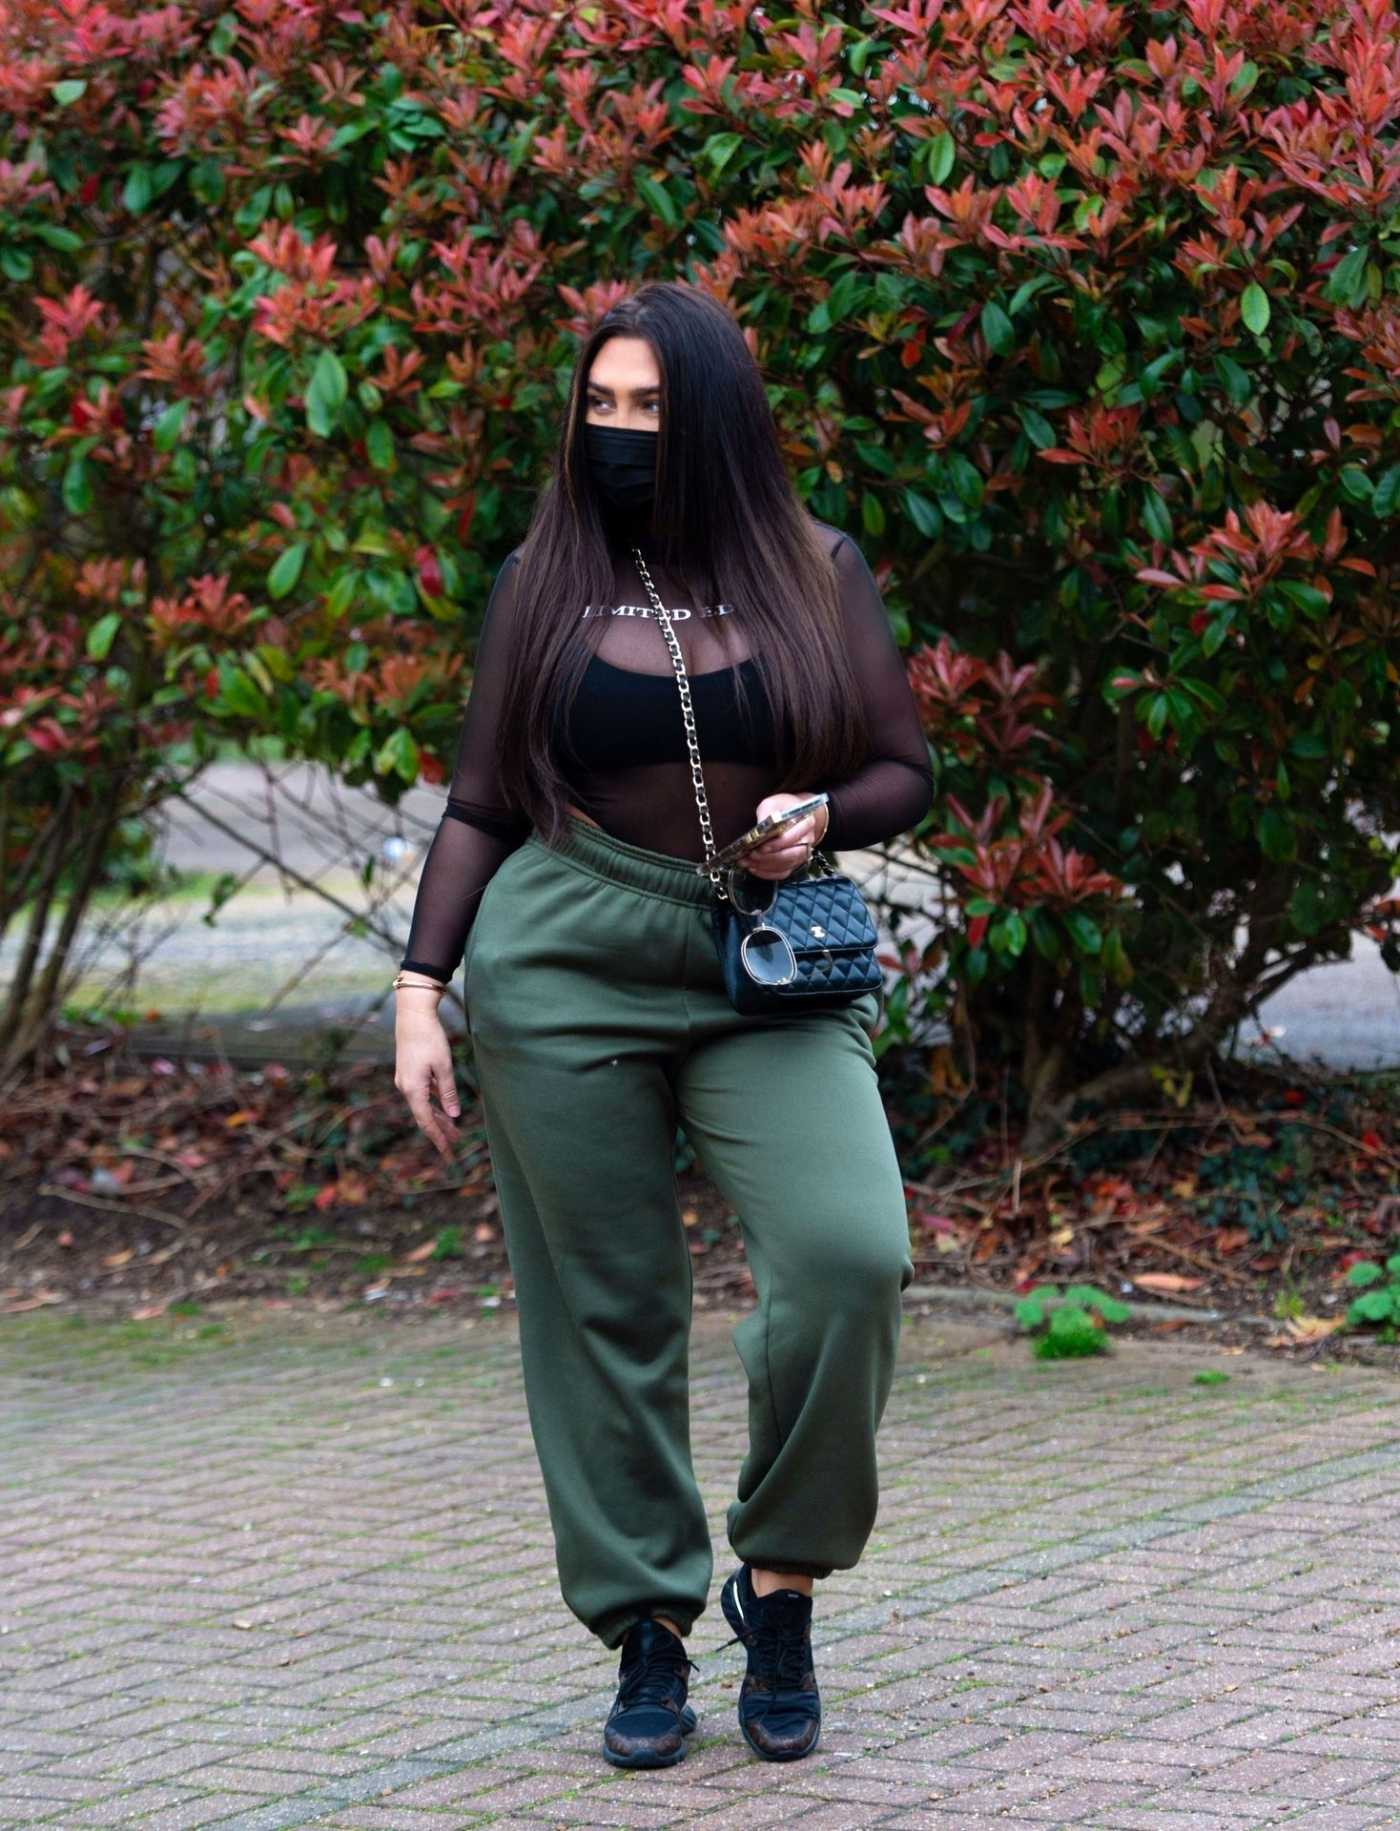 Lauren Goodger in a Black Face Mask Leaves Her House in Essex 03/20/2020